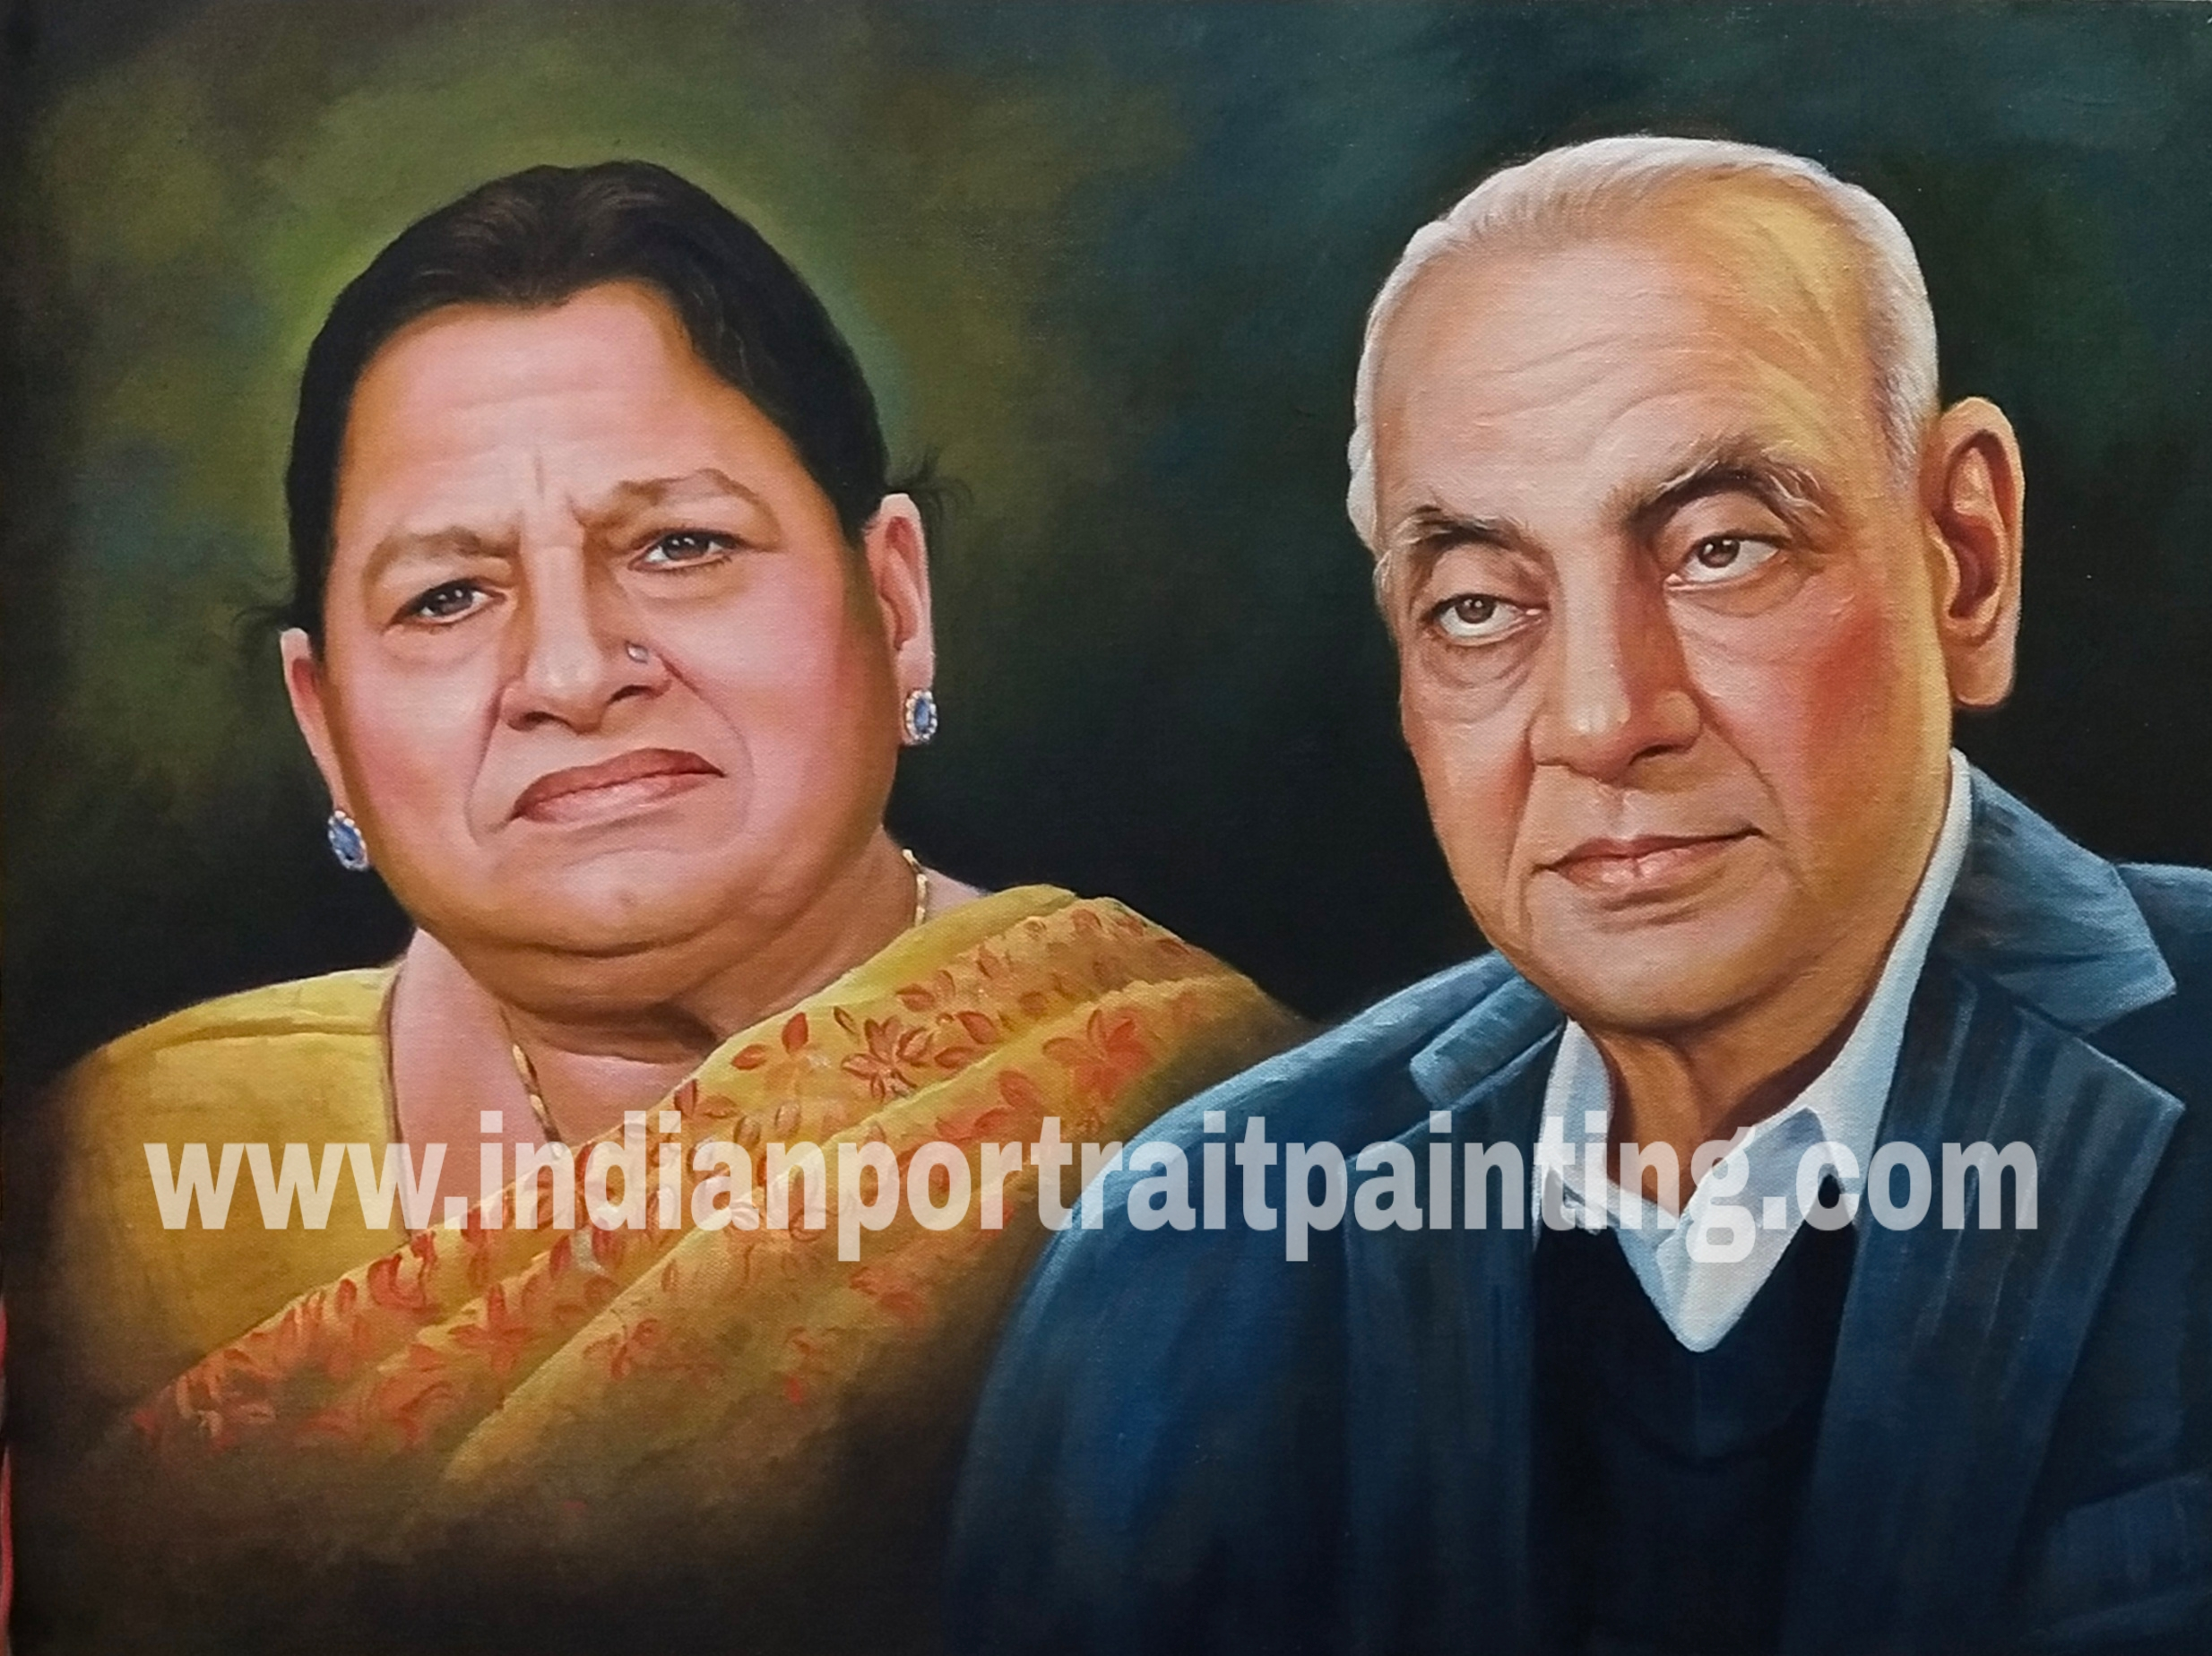 Photo to oil portrait painting on canvas - memory of grand parents